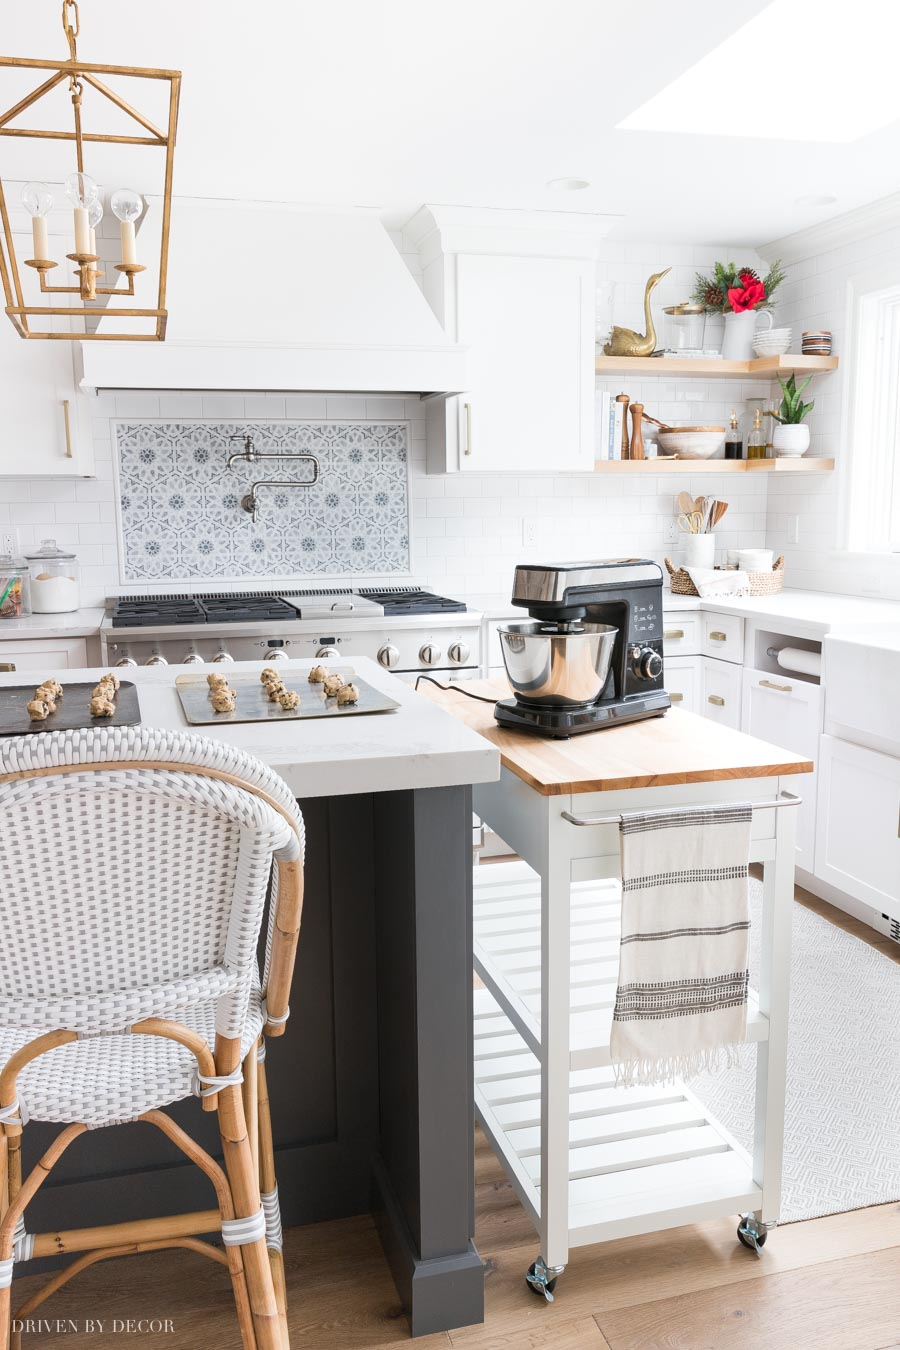 A kitchen cart is perfect for adding some extra food prep space when you're short on countertop space!